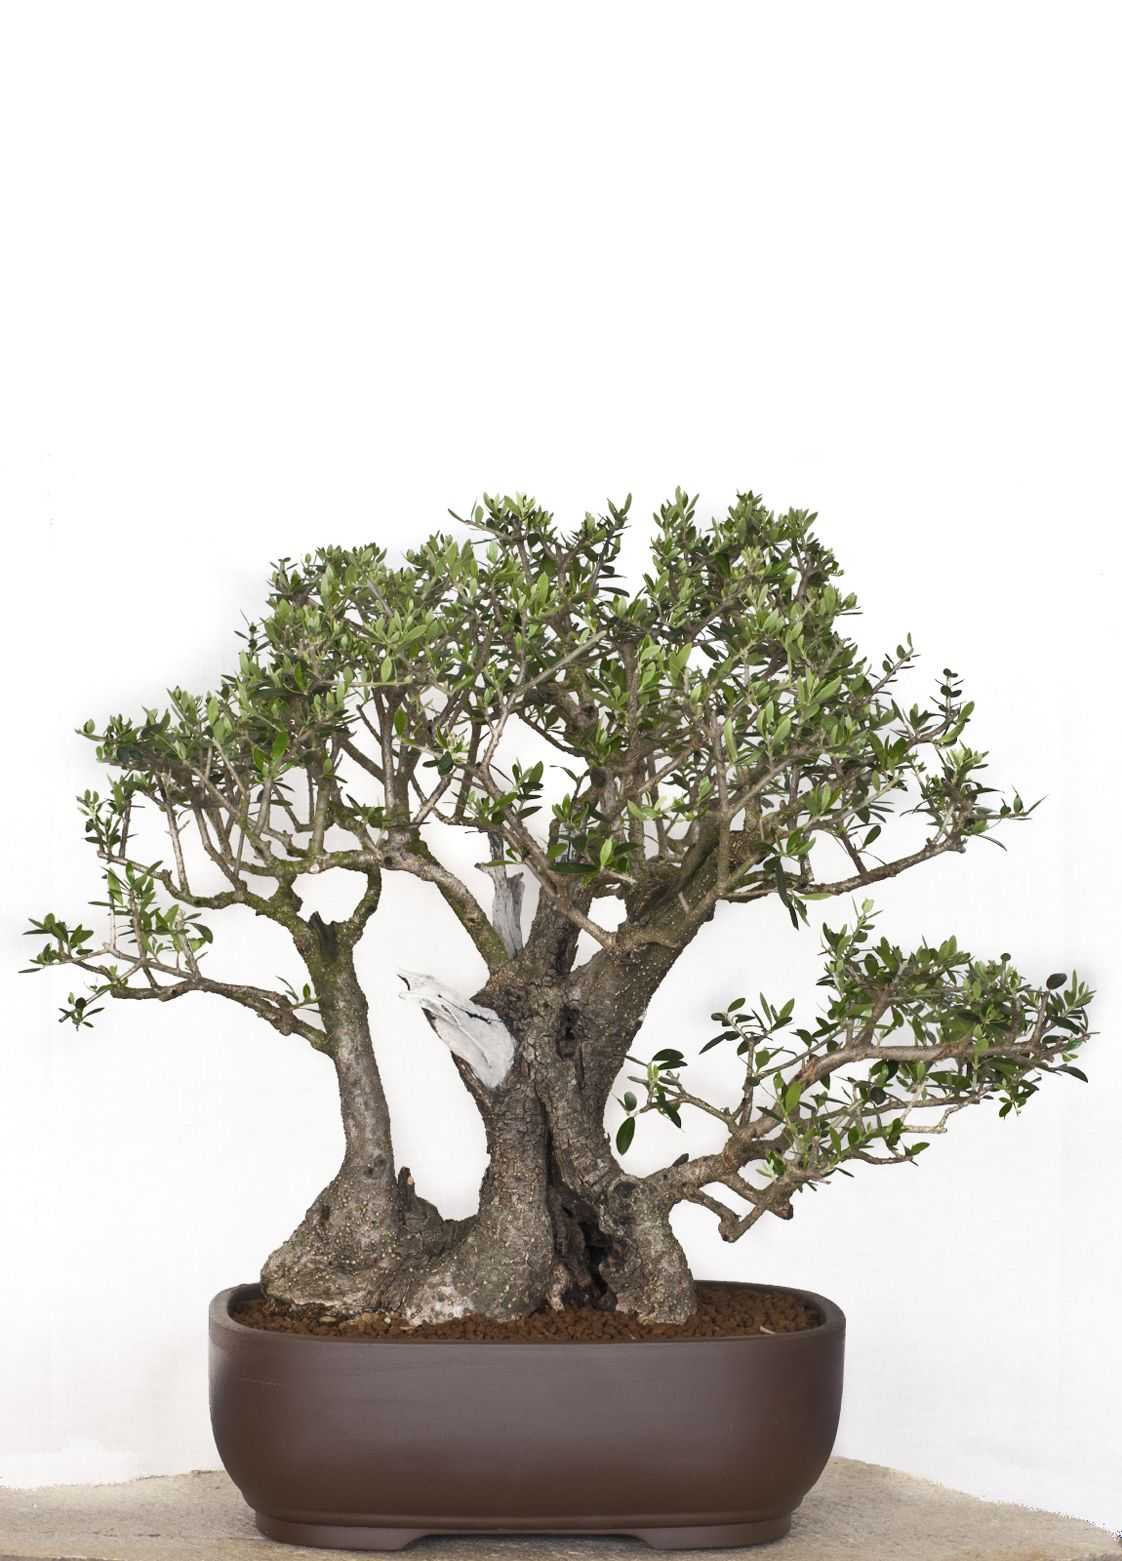 Olive bonsai olive bonsai bonsai pinterest for Bonsai hydrokultur